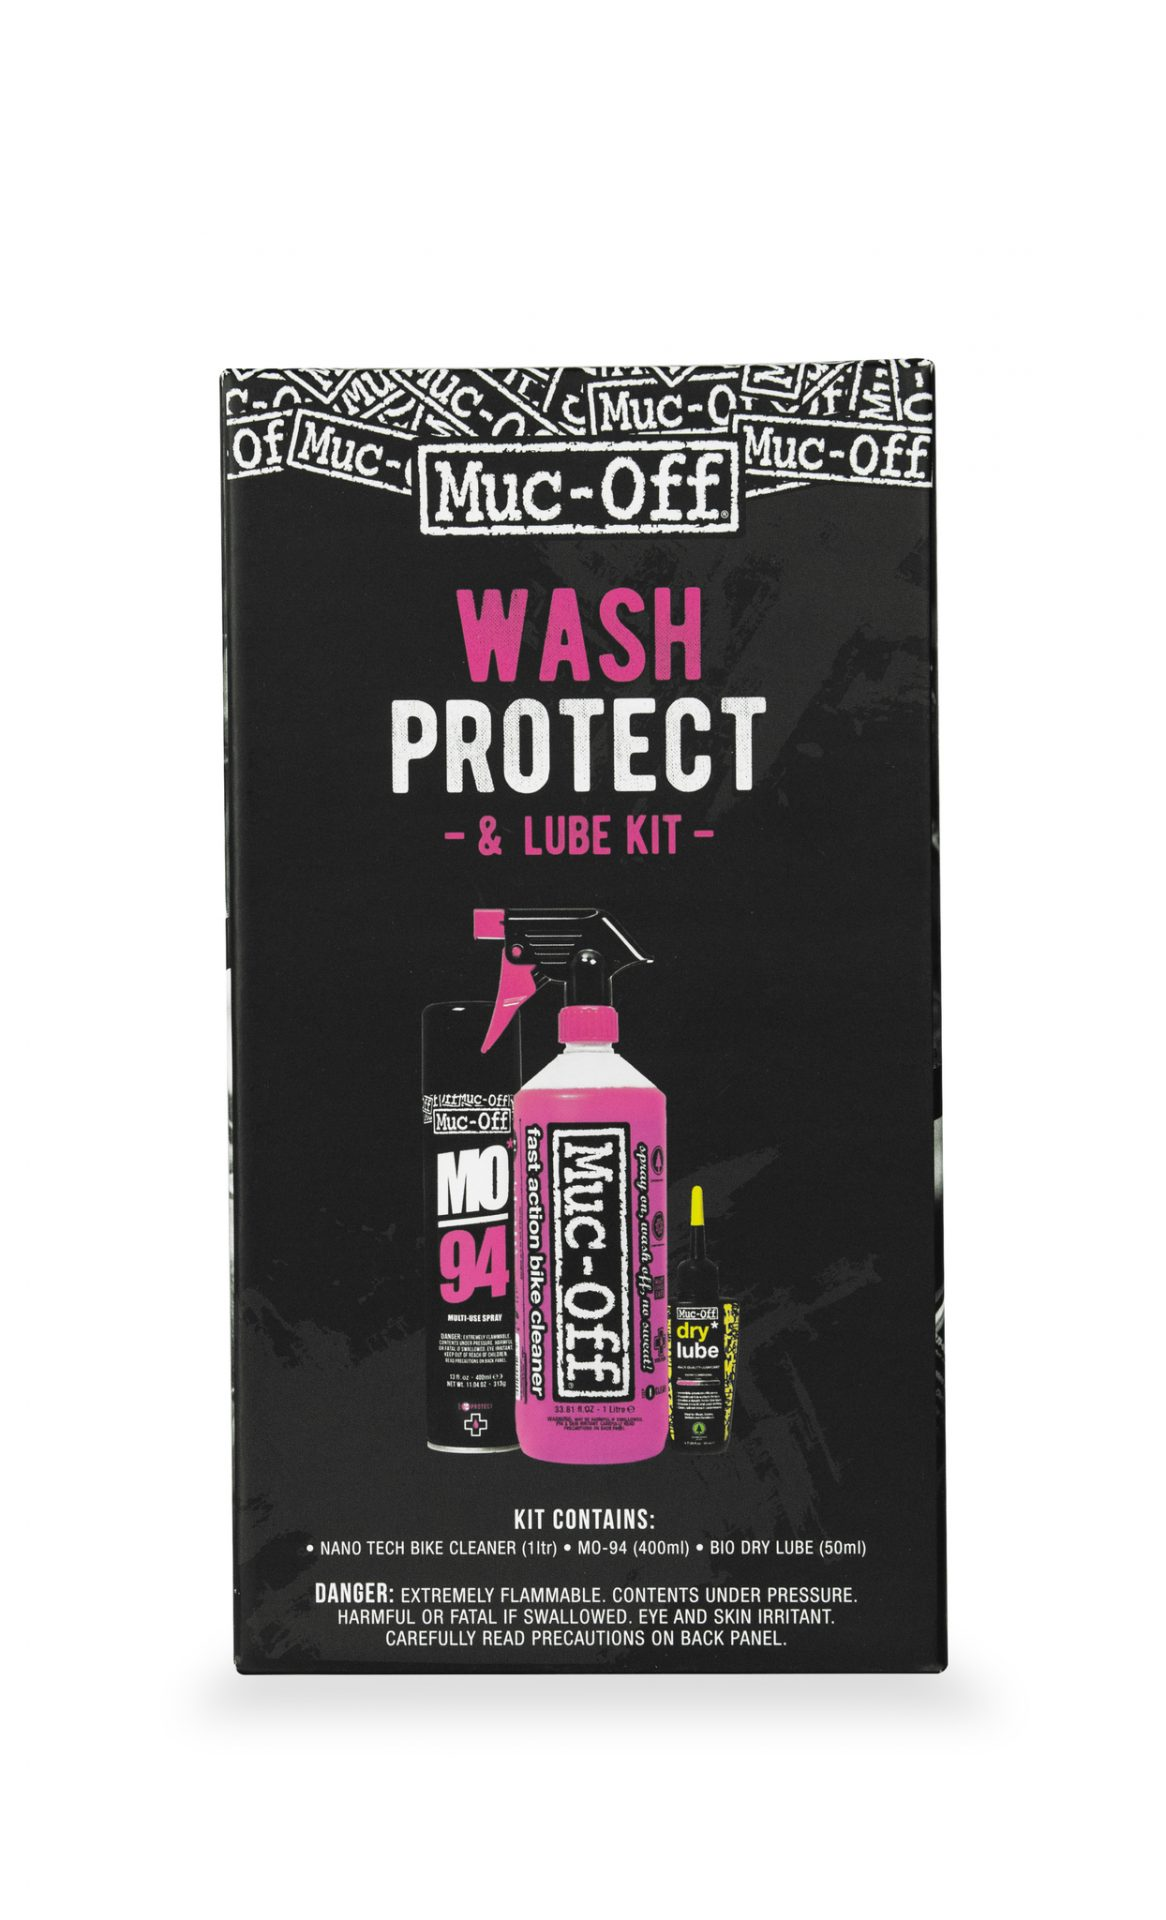 Muc-Off Wash, Protect & DRY Lube KIT